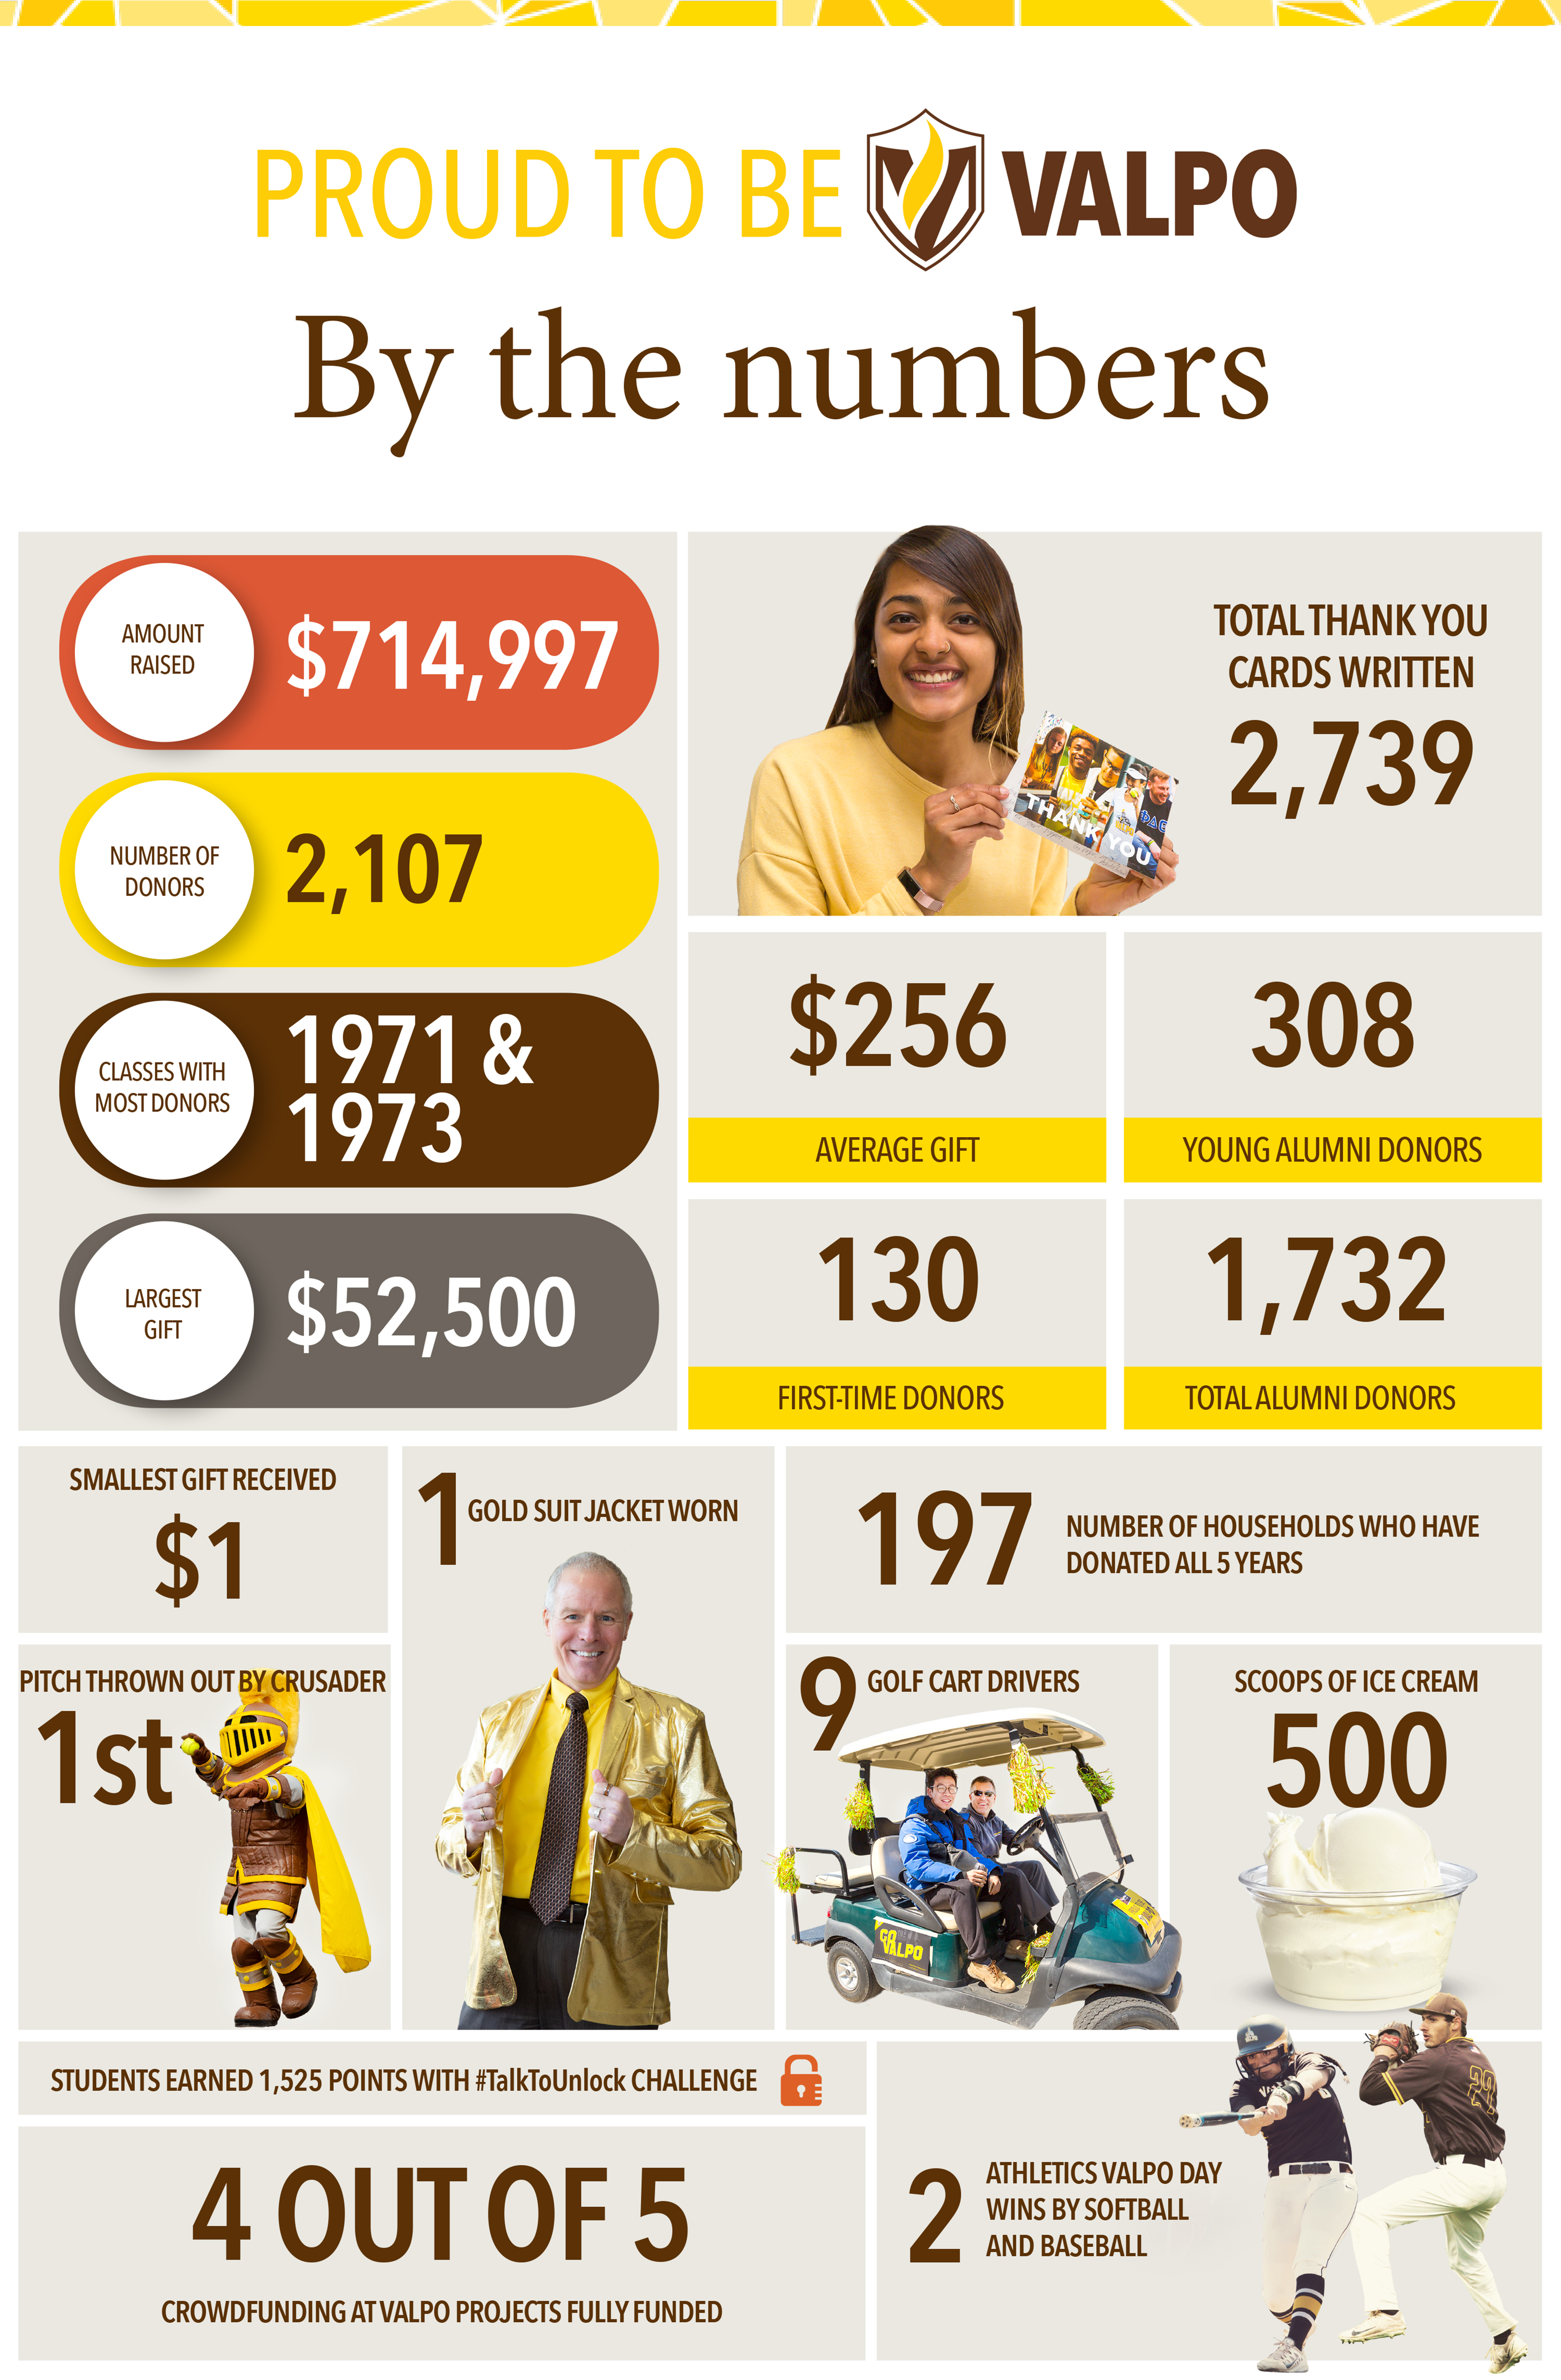 Total Donors 2,107 Alumni Donors 1,732 First Time Donors 130 Golf Cart Drivers 9 Scoops of Culvers 500 Young Alumni Donors 308 Class Year with the Most Donors 1971 and 1973 Gold Suit Jackets Worn 1 Average Gift $256.27 Largest Gift $714,996.81 Thank You notes written 2,739 Students earned 1,525 points with #TalkToUnlock Challenge 1 first pitch thrown by the Crusader 2 Athletics Valpo Day wins by softball and baseball 10 golden #ValpoDay dollars found with on-campus scavenger hunt 24 hours of sharing Valpo spirit with our Valpo family